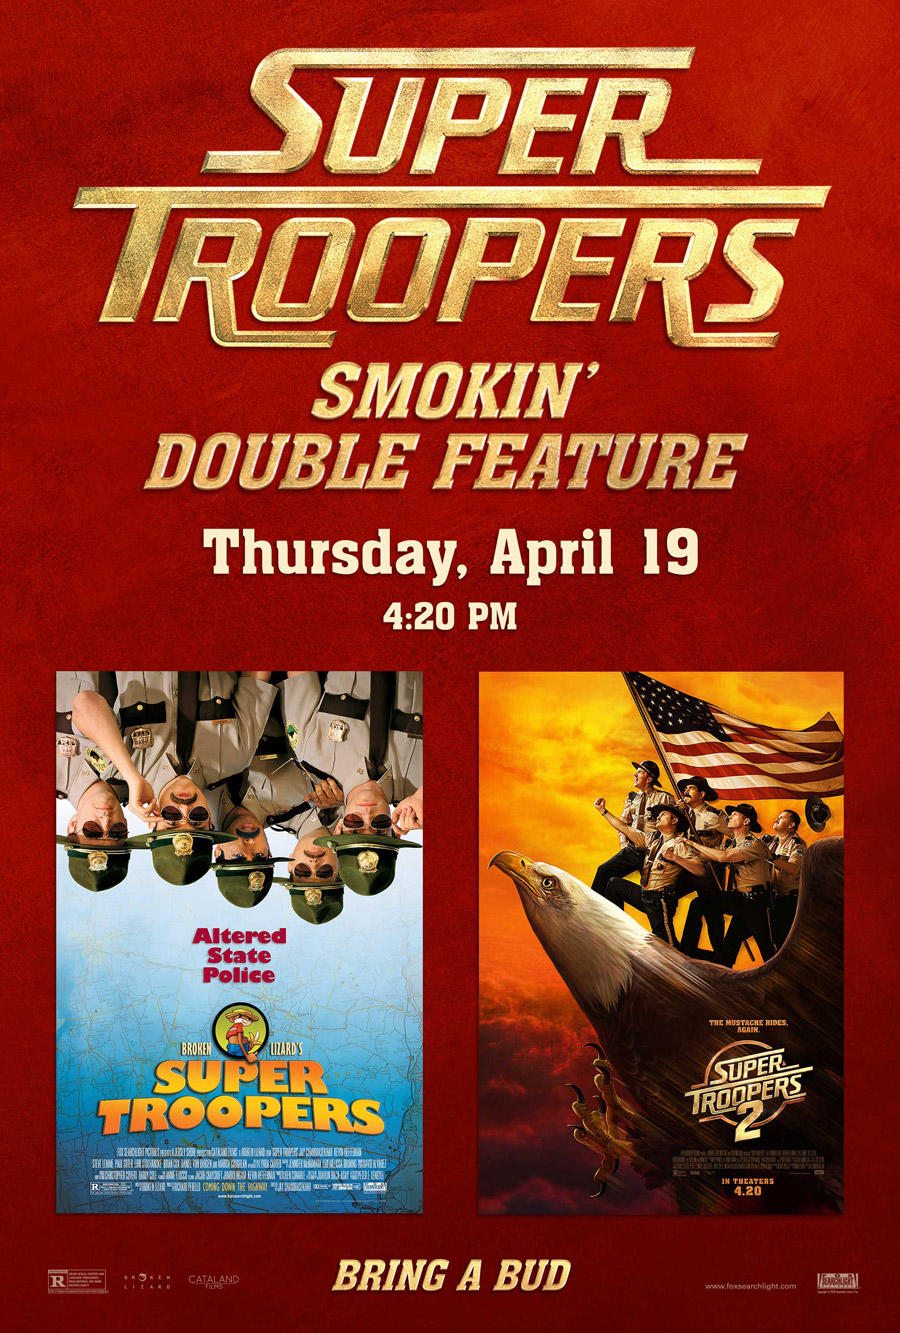 Super Troopers Double Feature poster art